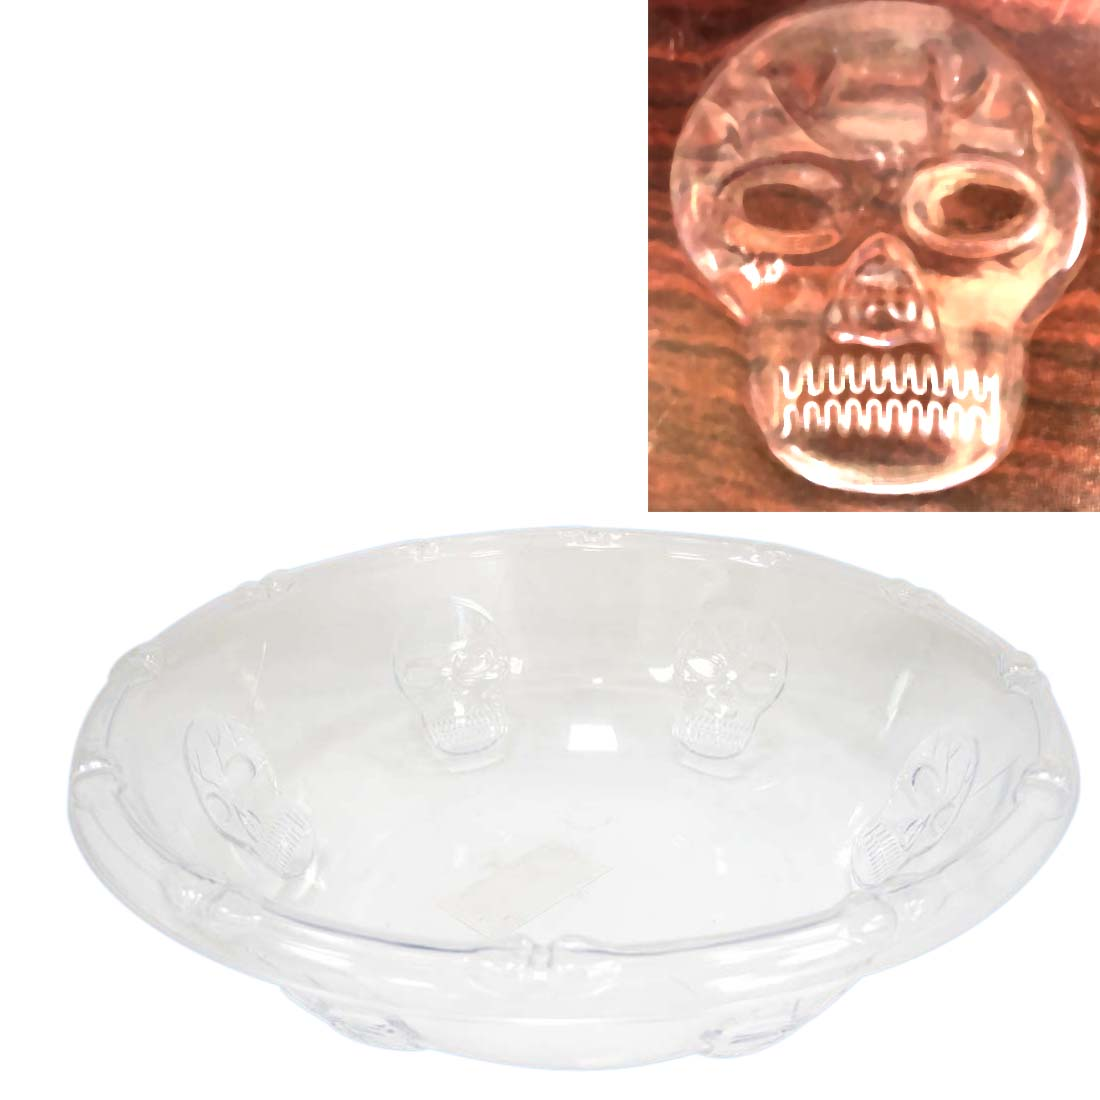 View BOWL 12 X 3.5 INCHES CRYSTAL PLASTIC  HALLOWEEN DESIGN